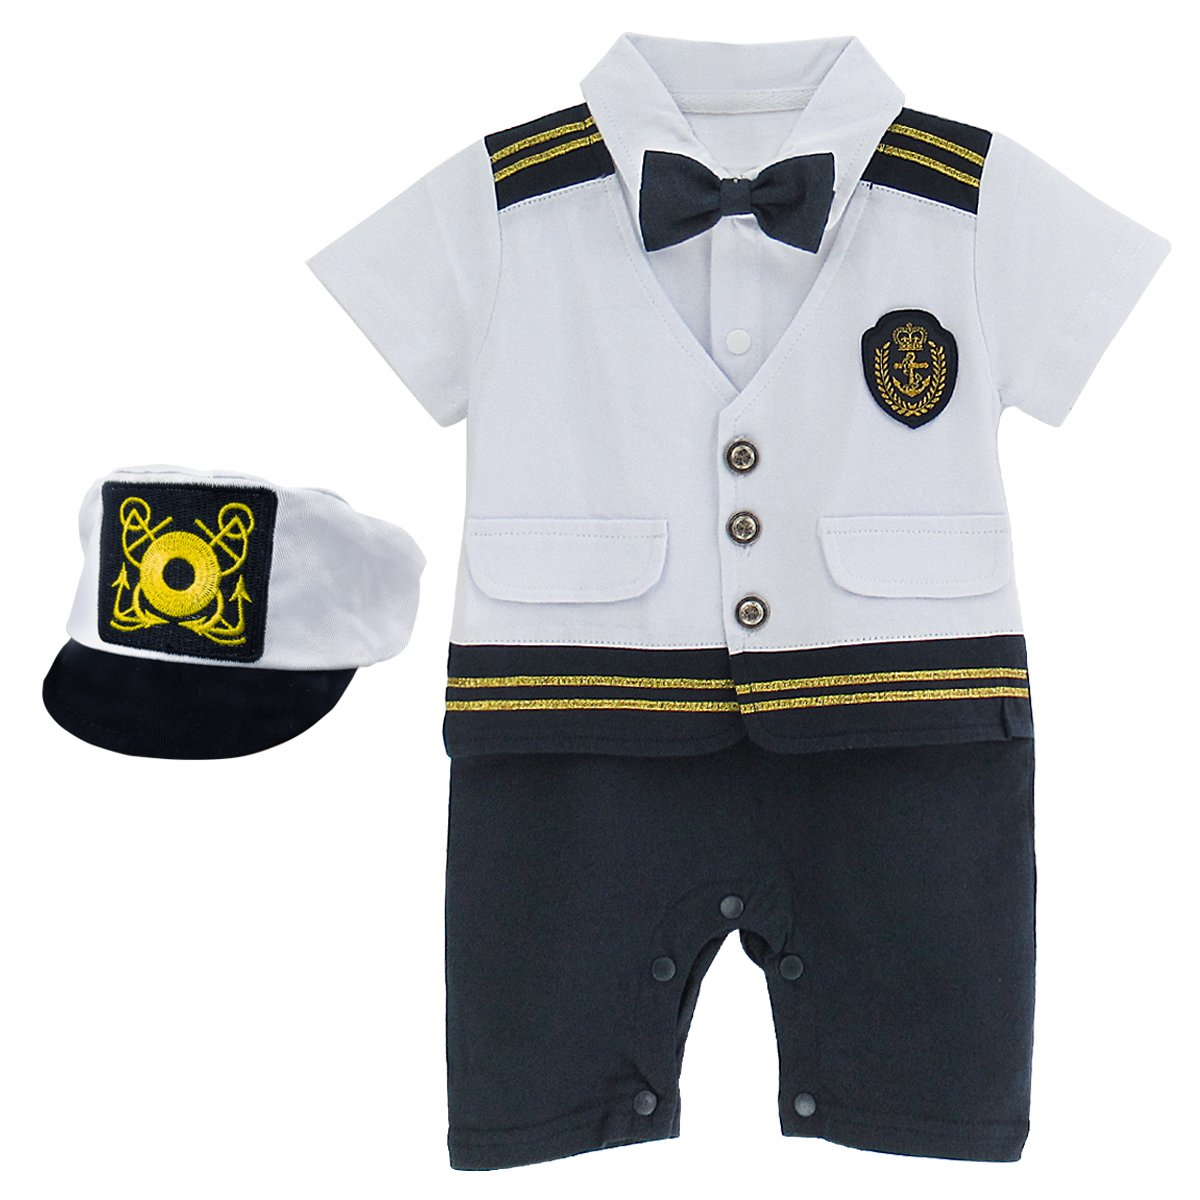 A&J Design Baby Boys' Navy Captain Romper Outfit with Hat (9-12 Months, Set)